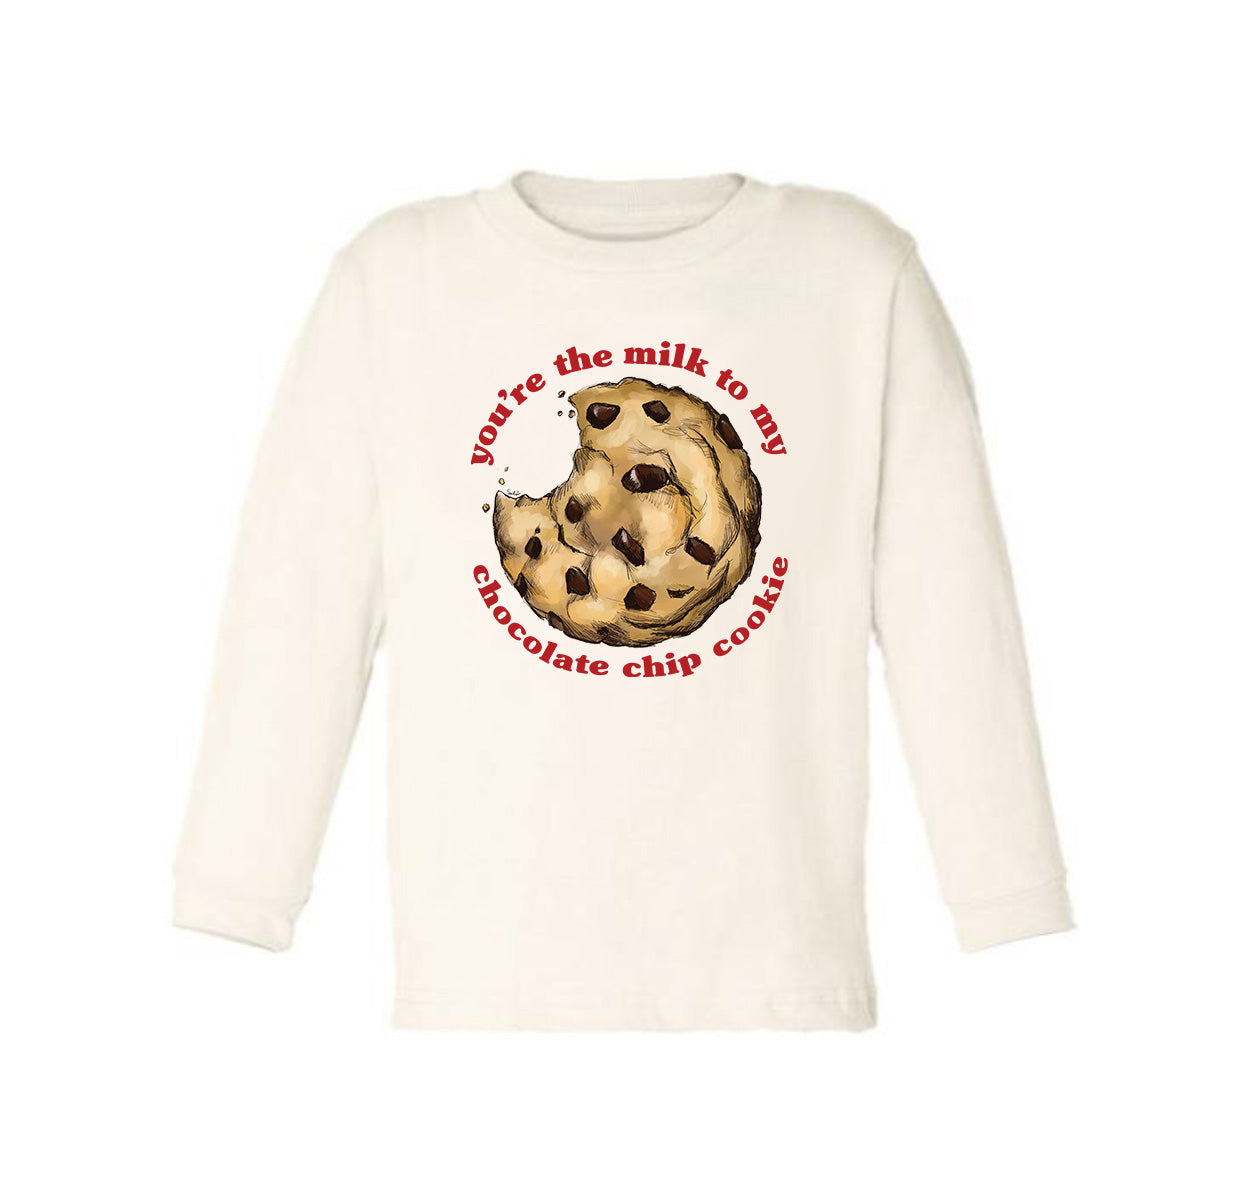 You're the Milk to my Chocolate Chip Cookie [Long Sleeved Toddler Tee]